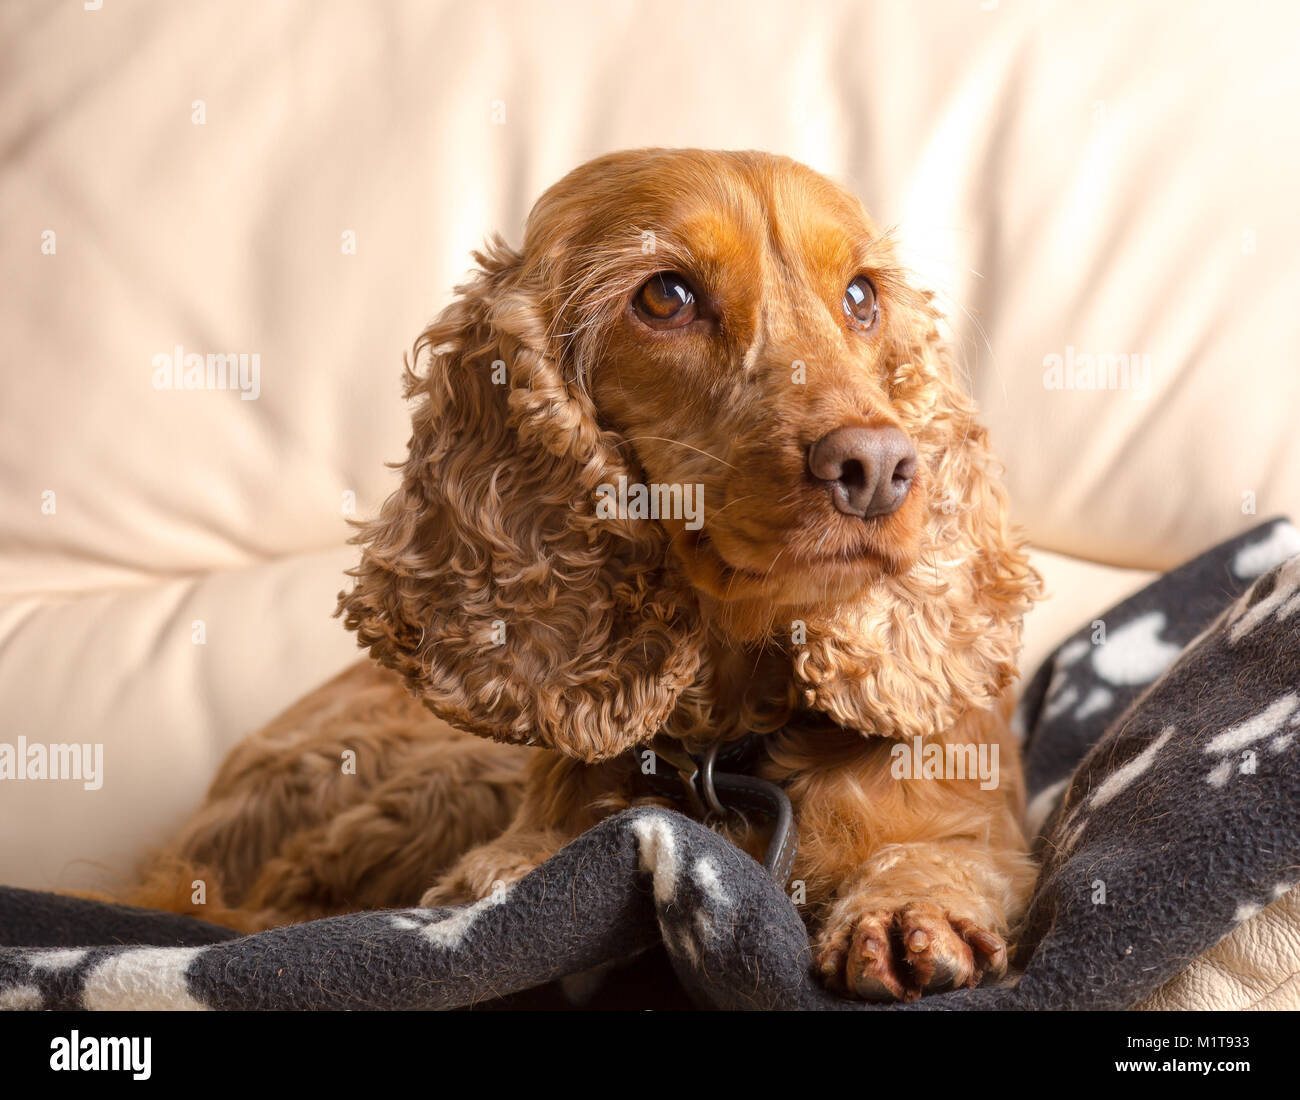 Adorable portrait of family pet dog, red cocker spaniel, sitting on special doggie blanket inside on sofa, looking - Stock Image